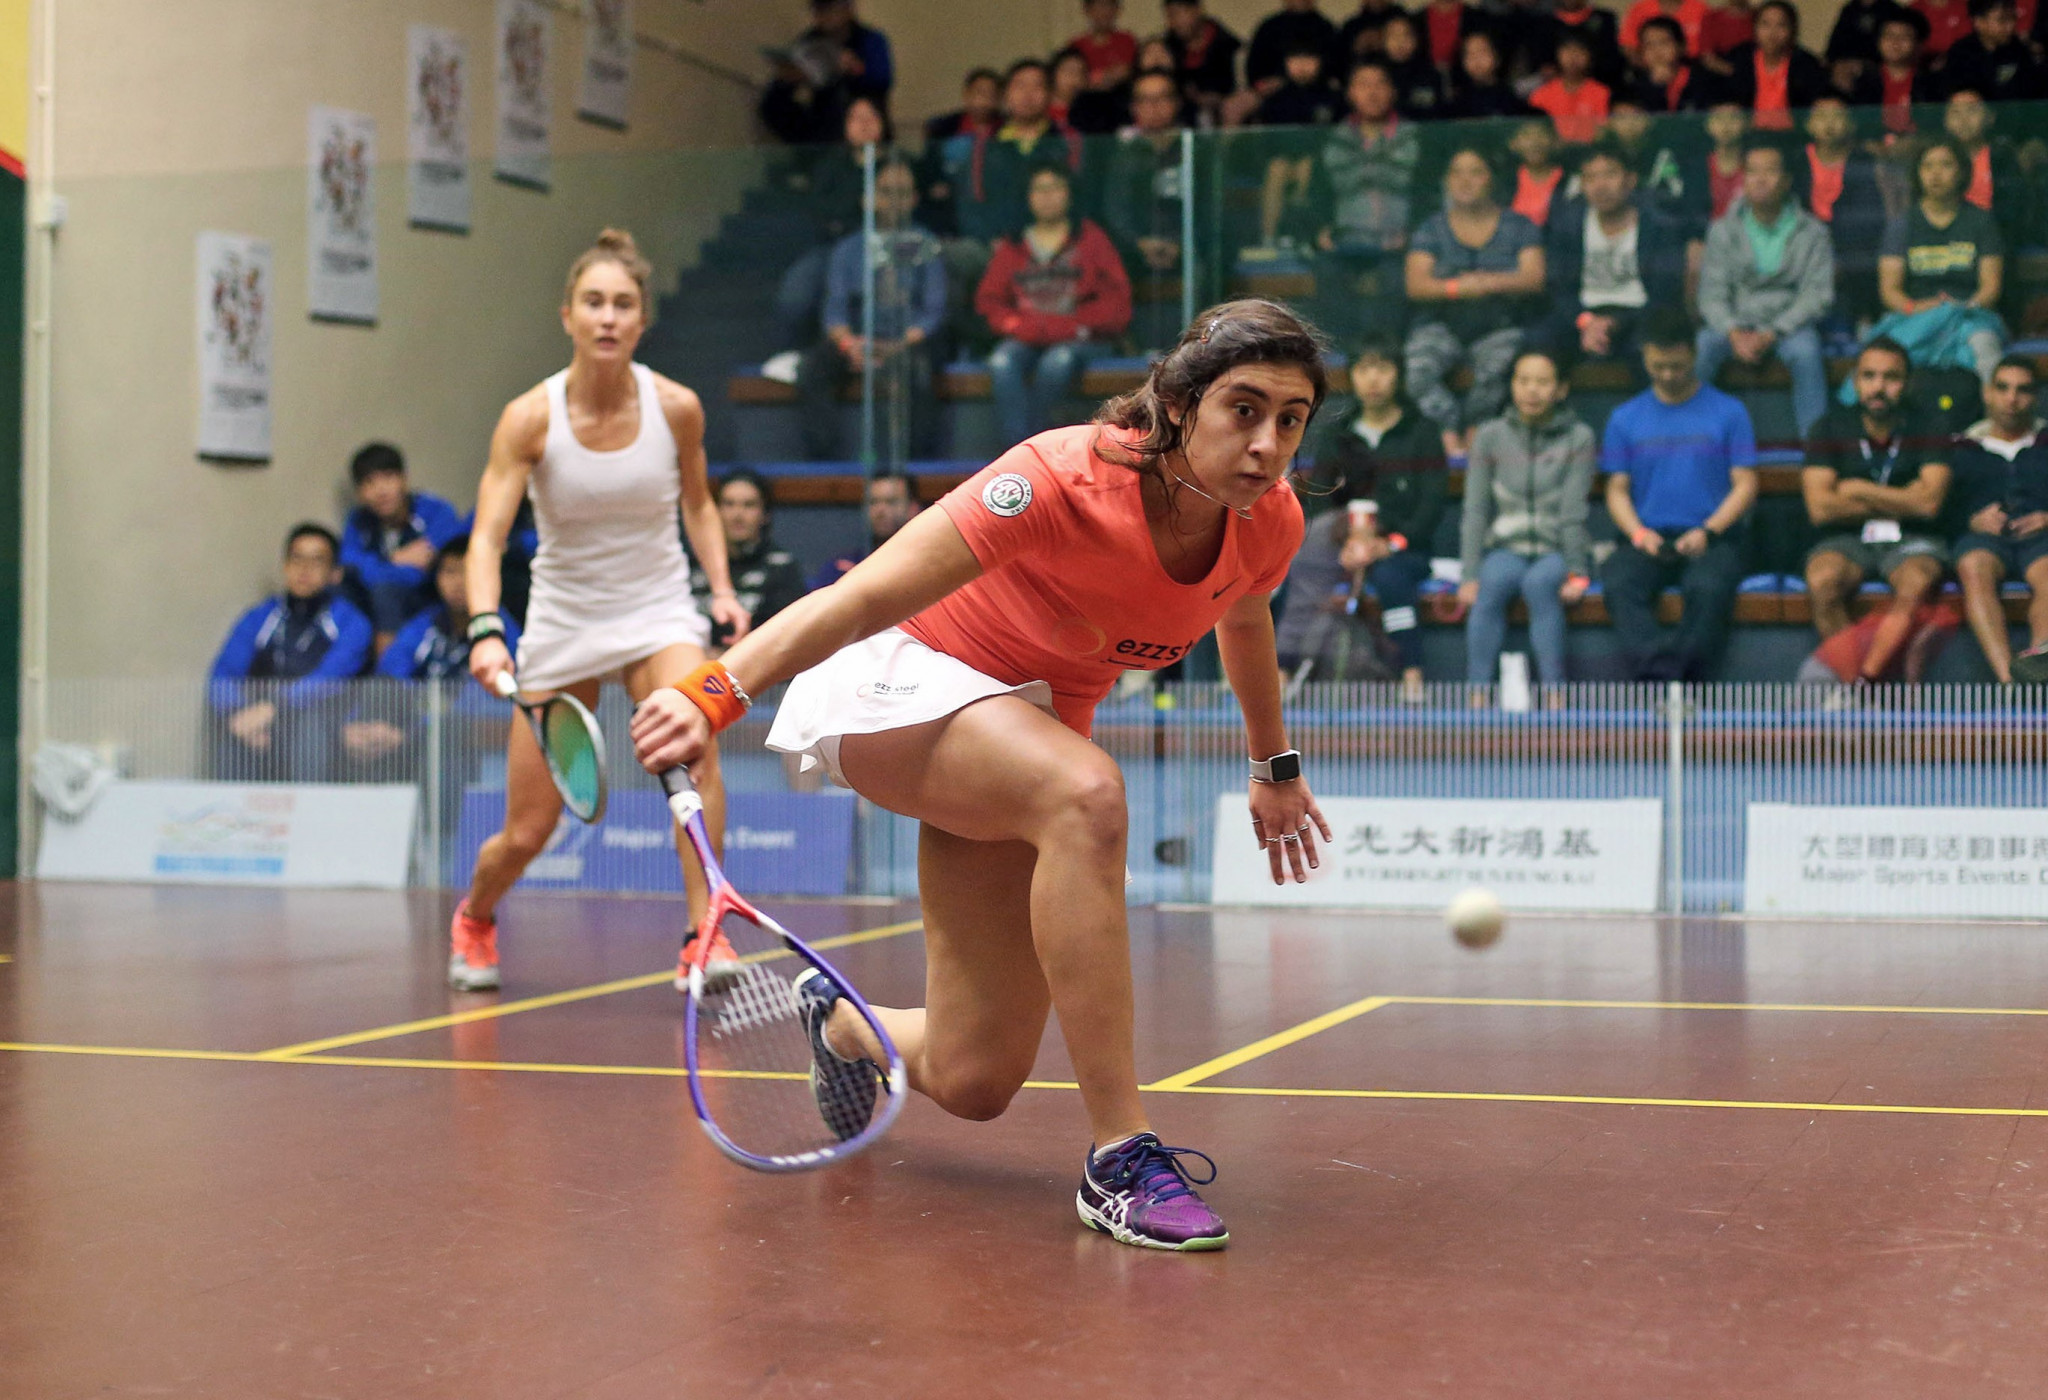 Egypt's Nour El Sherbini won her first game of the PSA Hong Kong Open to get her title defence underway ©PSA